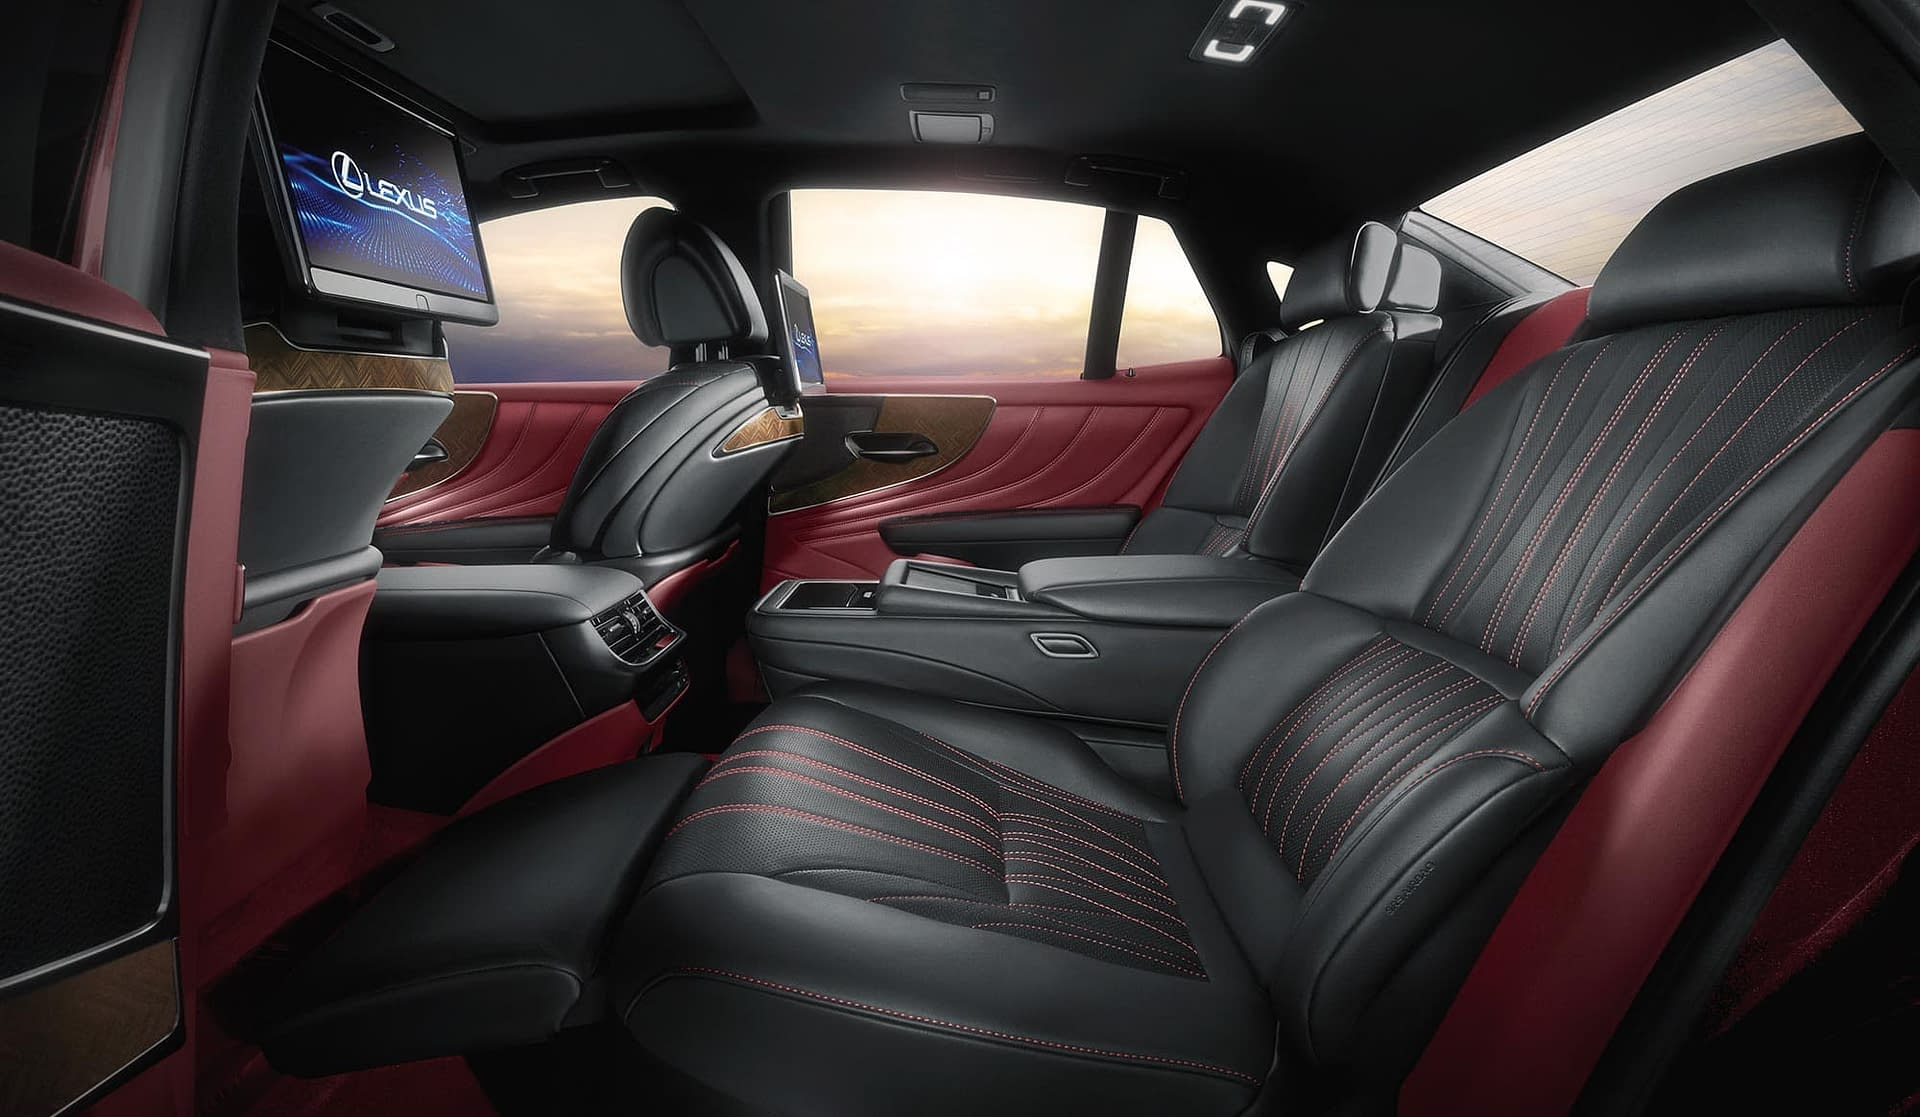 studio photography of the new lexus ls 500 interior photographed for m&c saatchi and abel by Smith and Daniels